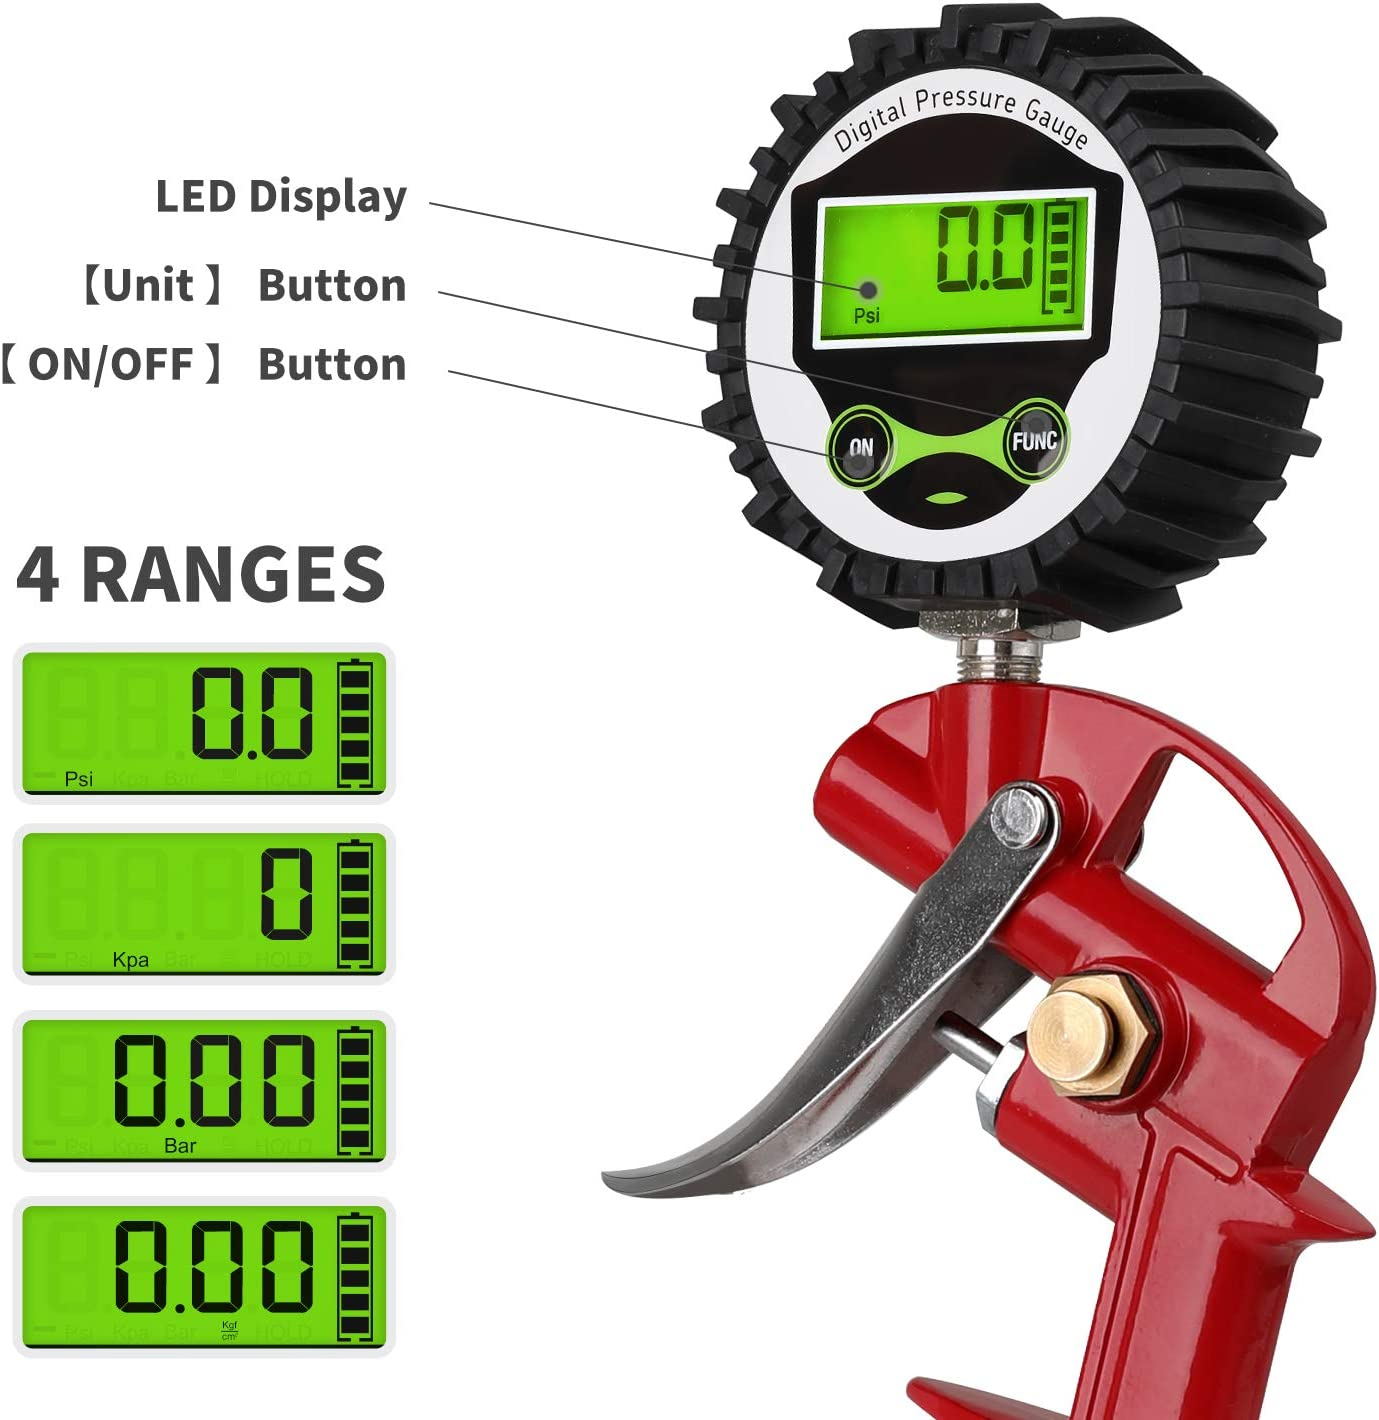 Hromee Digital Tire Inflator with Pressure Gauge for Car Bike 18-Inch Rubber Hose Presta to Schrader Valve Adapter and Air Compressor Accessories Quick Connect Plug